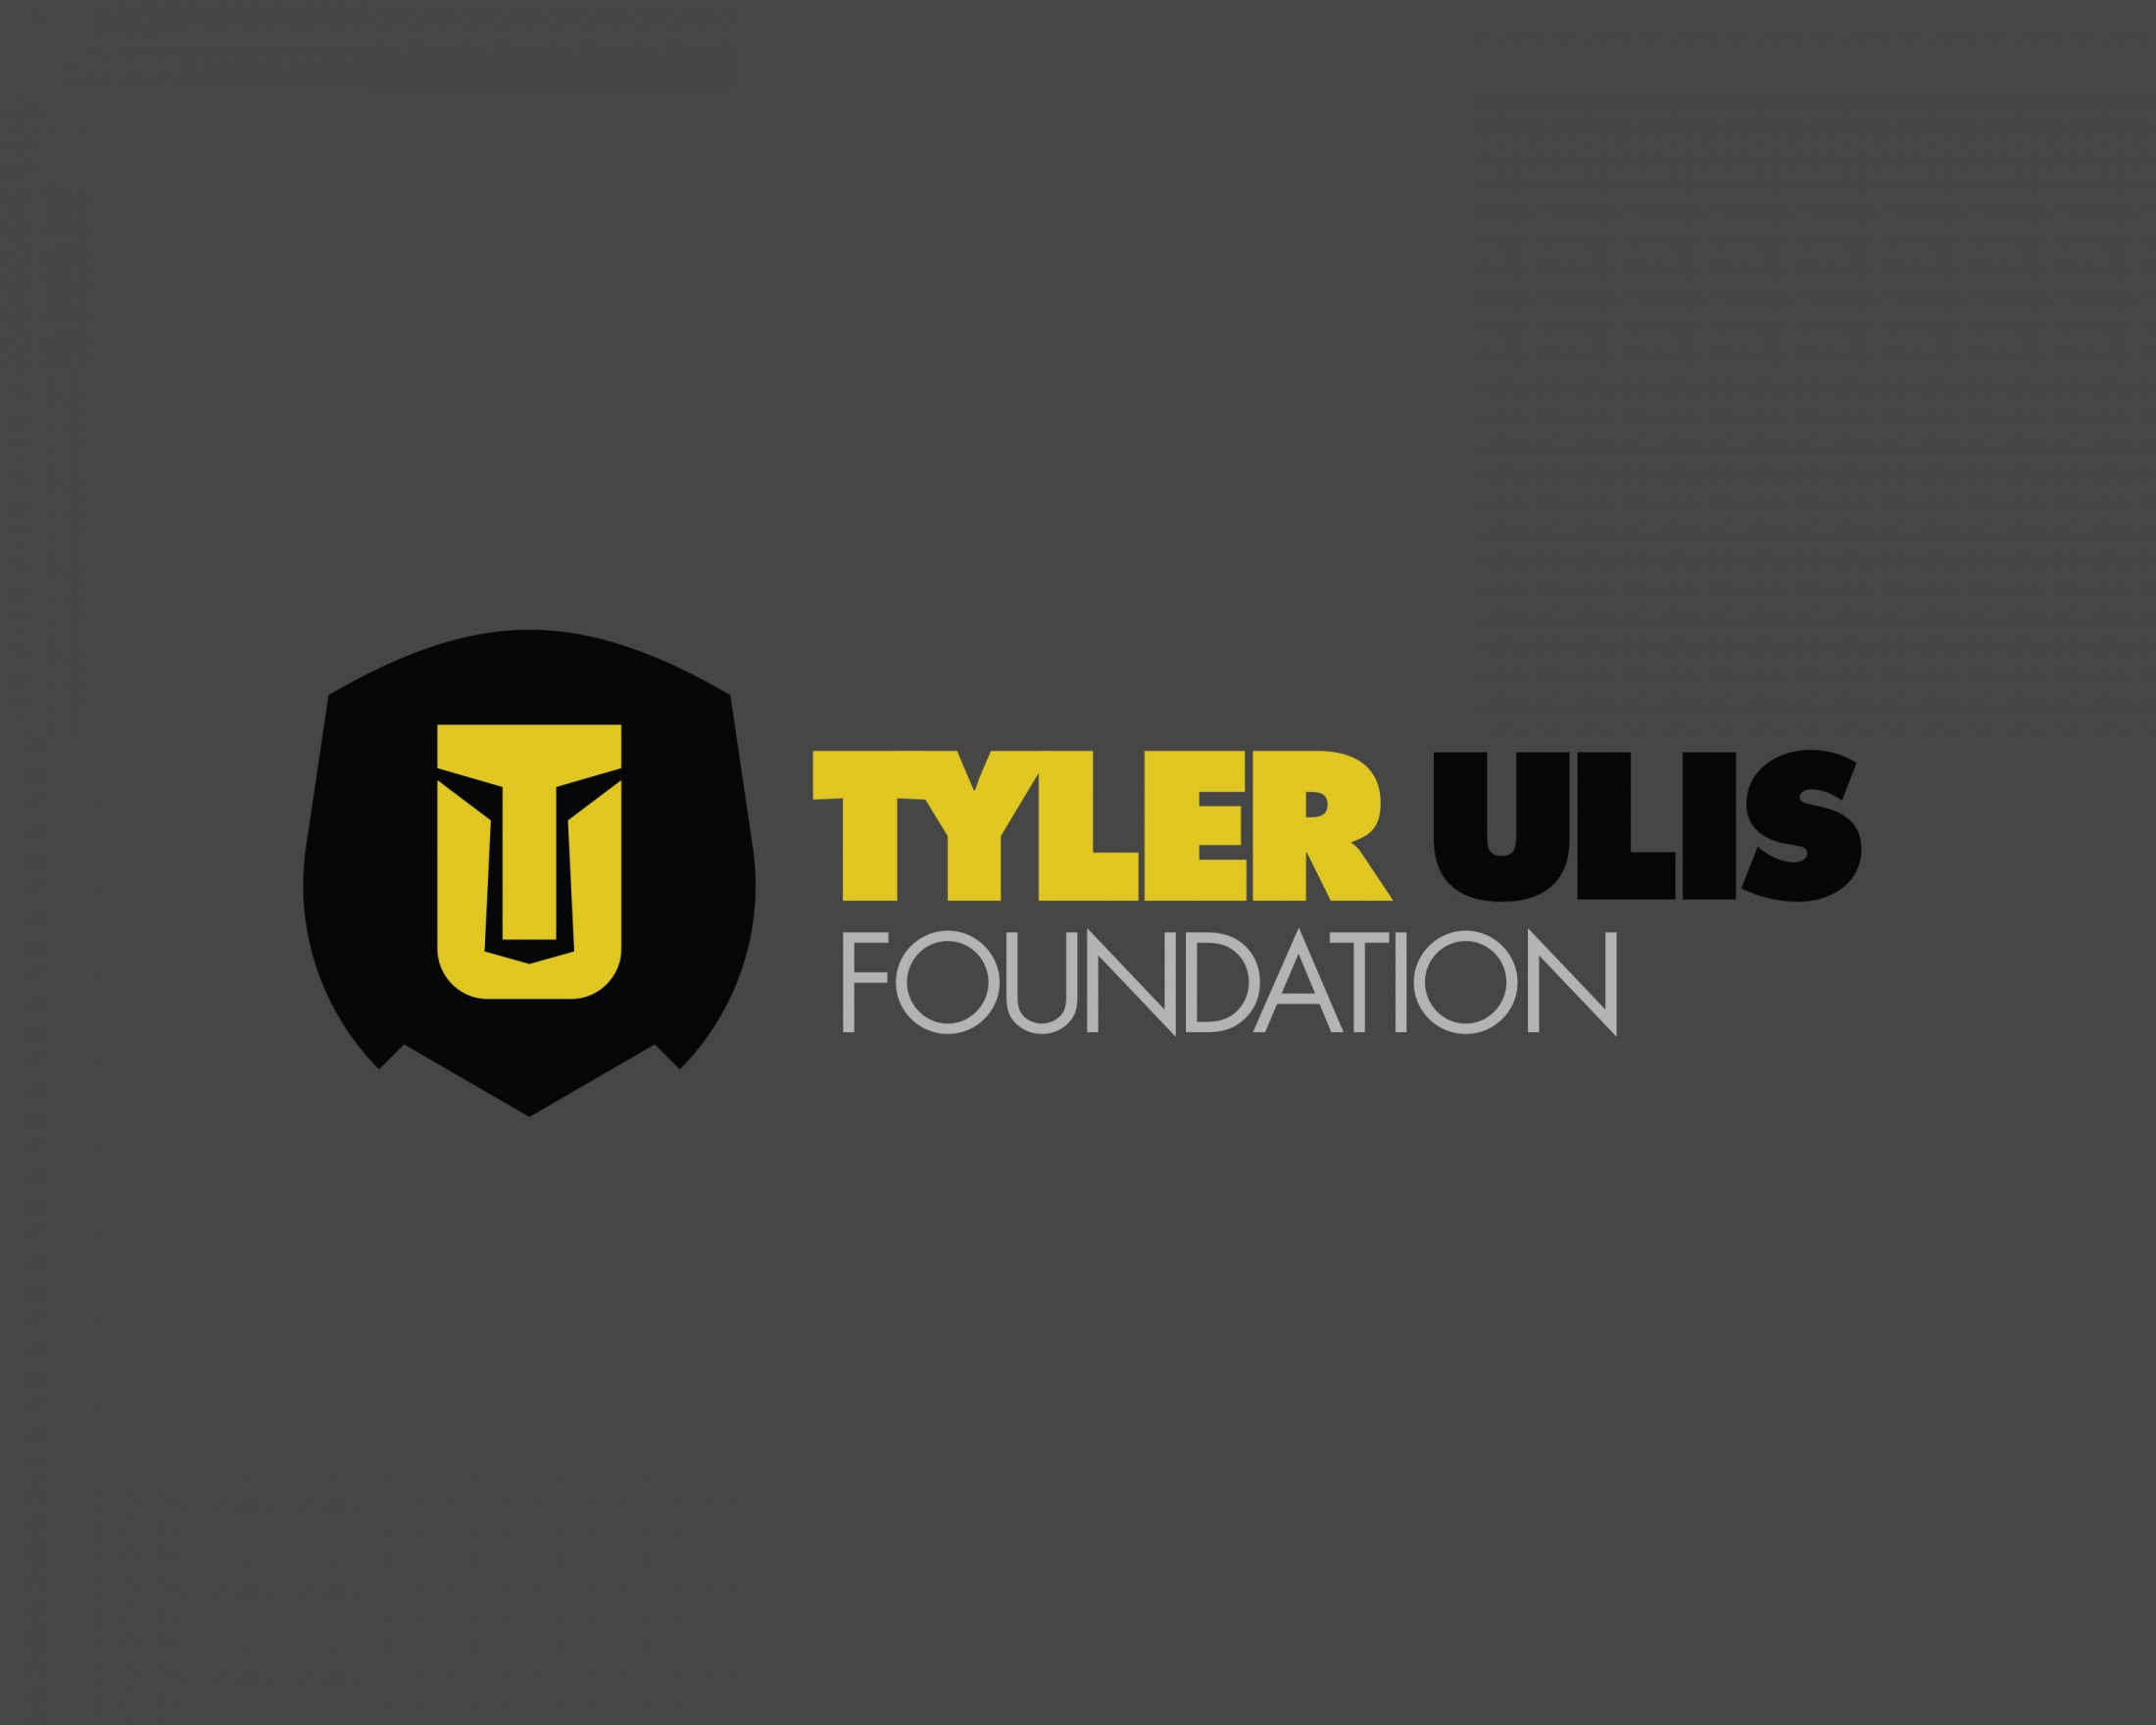 Thumbnail for Tyler Ulis Foundation Logo